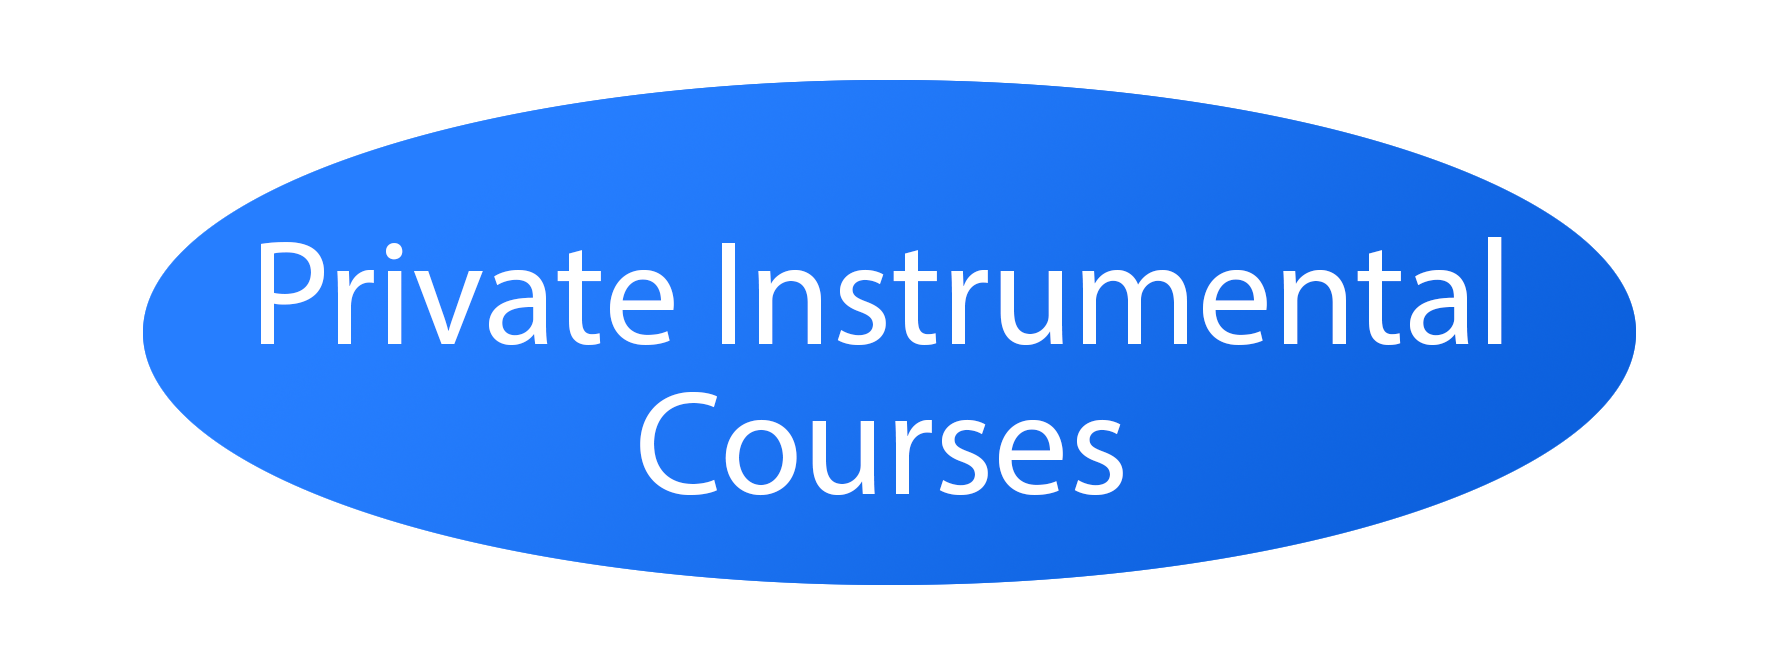 Private Instrumental Courses.png